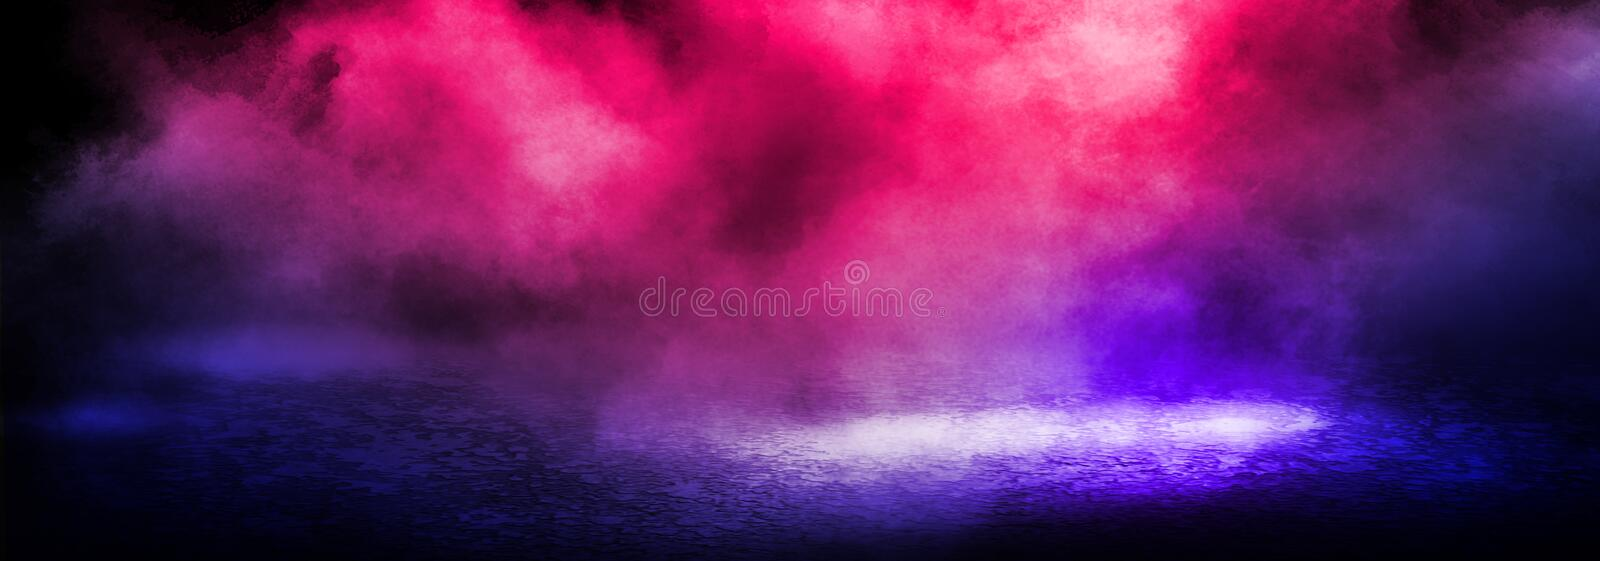 Dark background of the street, thick fog, spotlight, blue and red neon. Abstract background with neon lights, night view royalty free stock photos